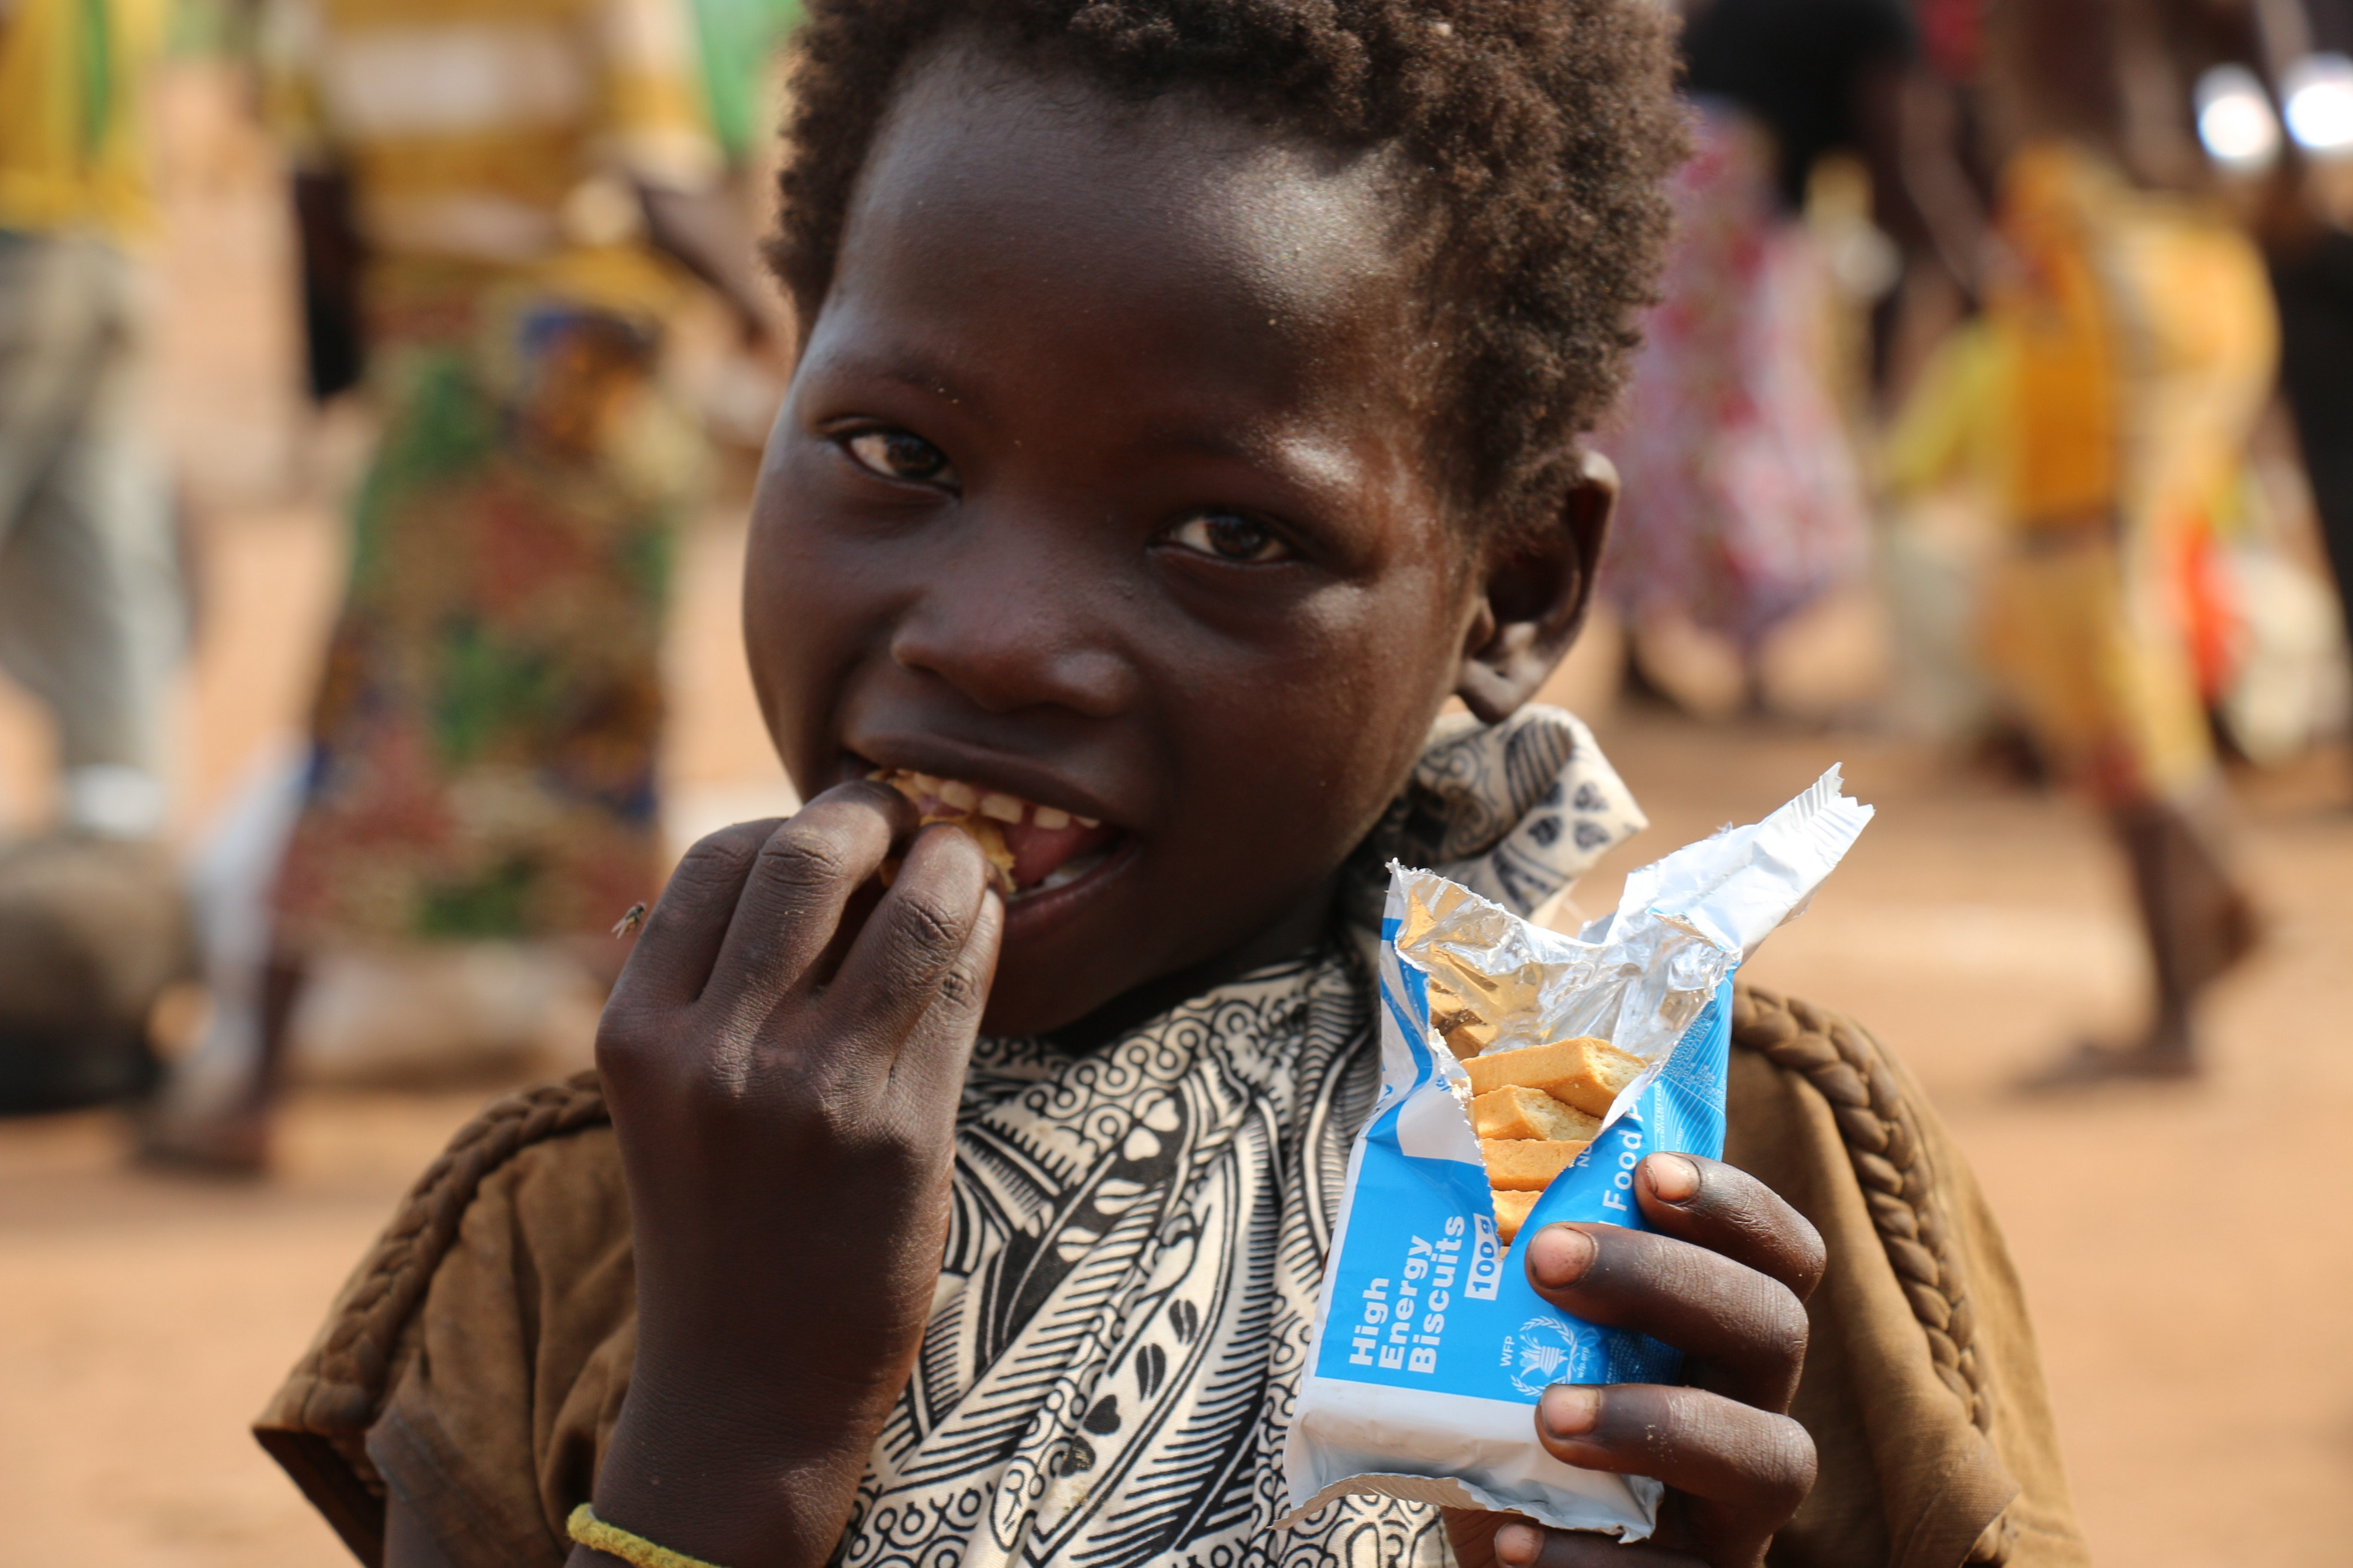 WFP at a glance. A regular lowdown on the facts, figures… | by World Food Programme | World Food Programme Insight